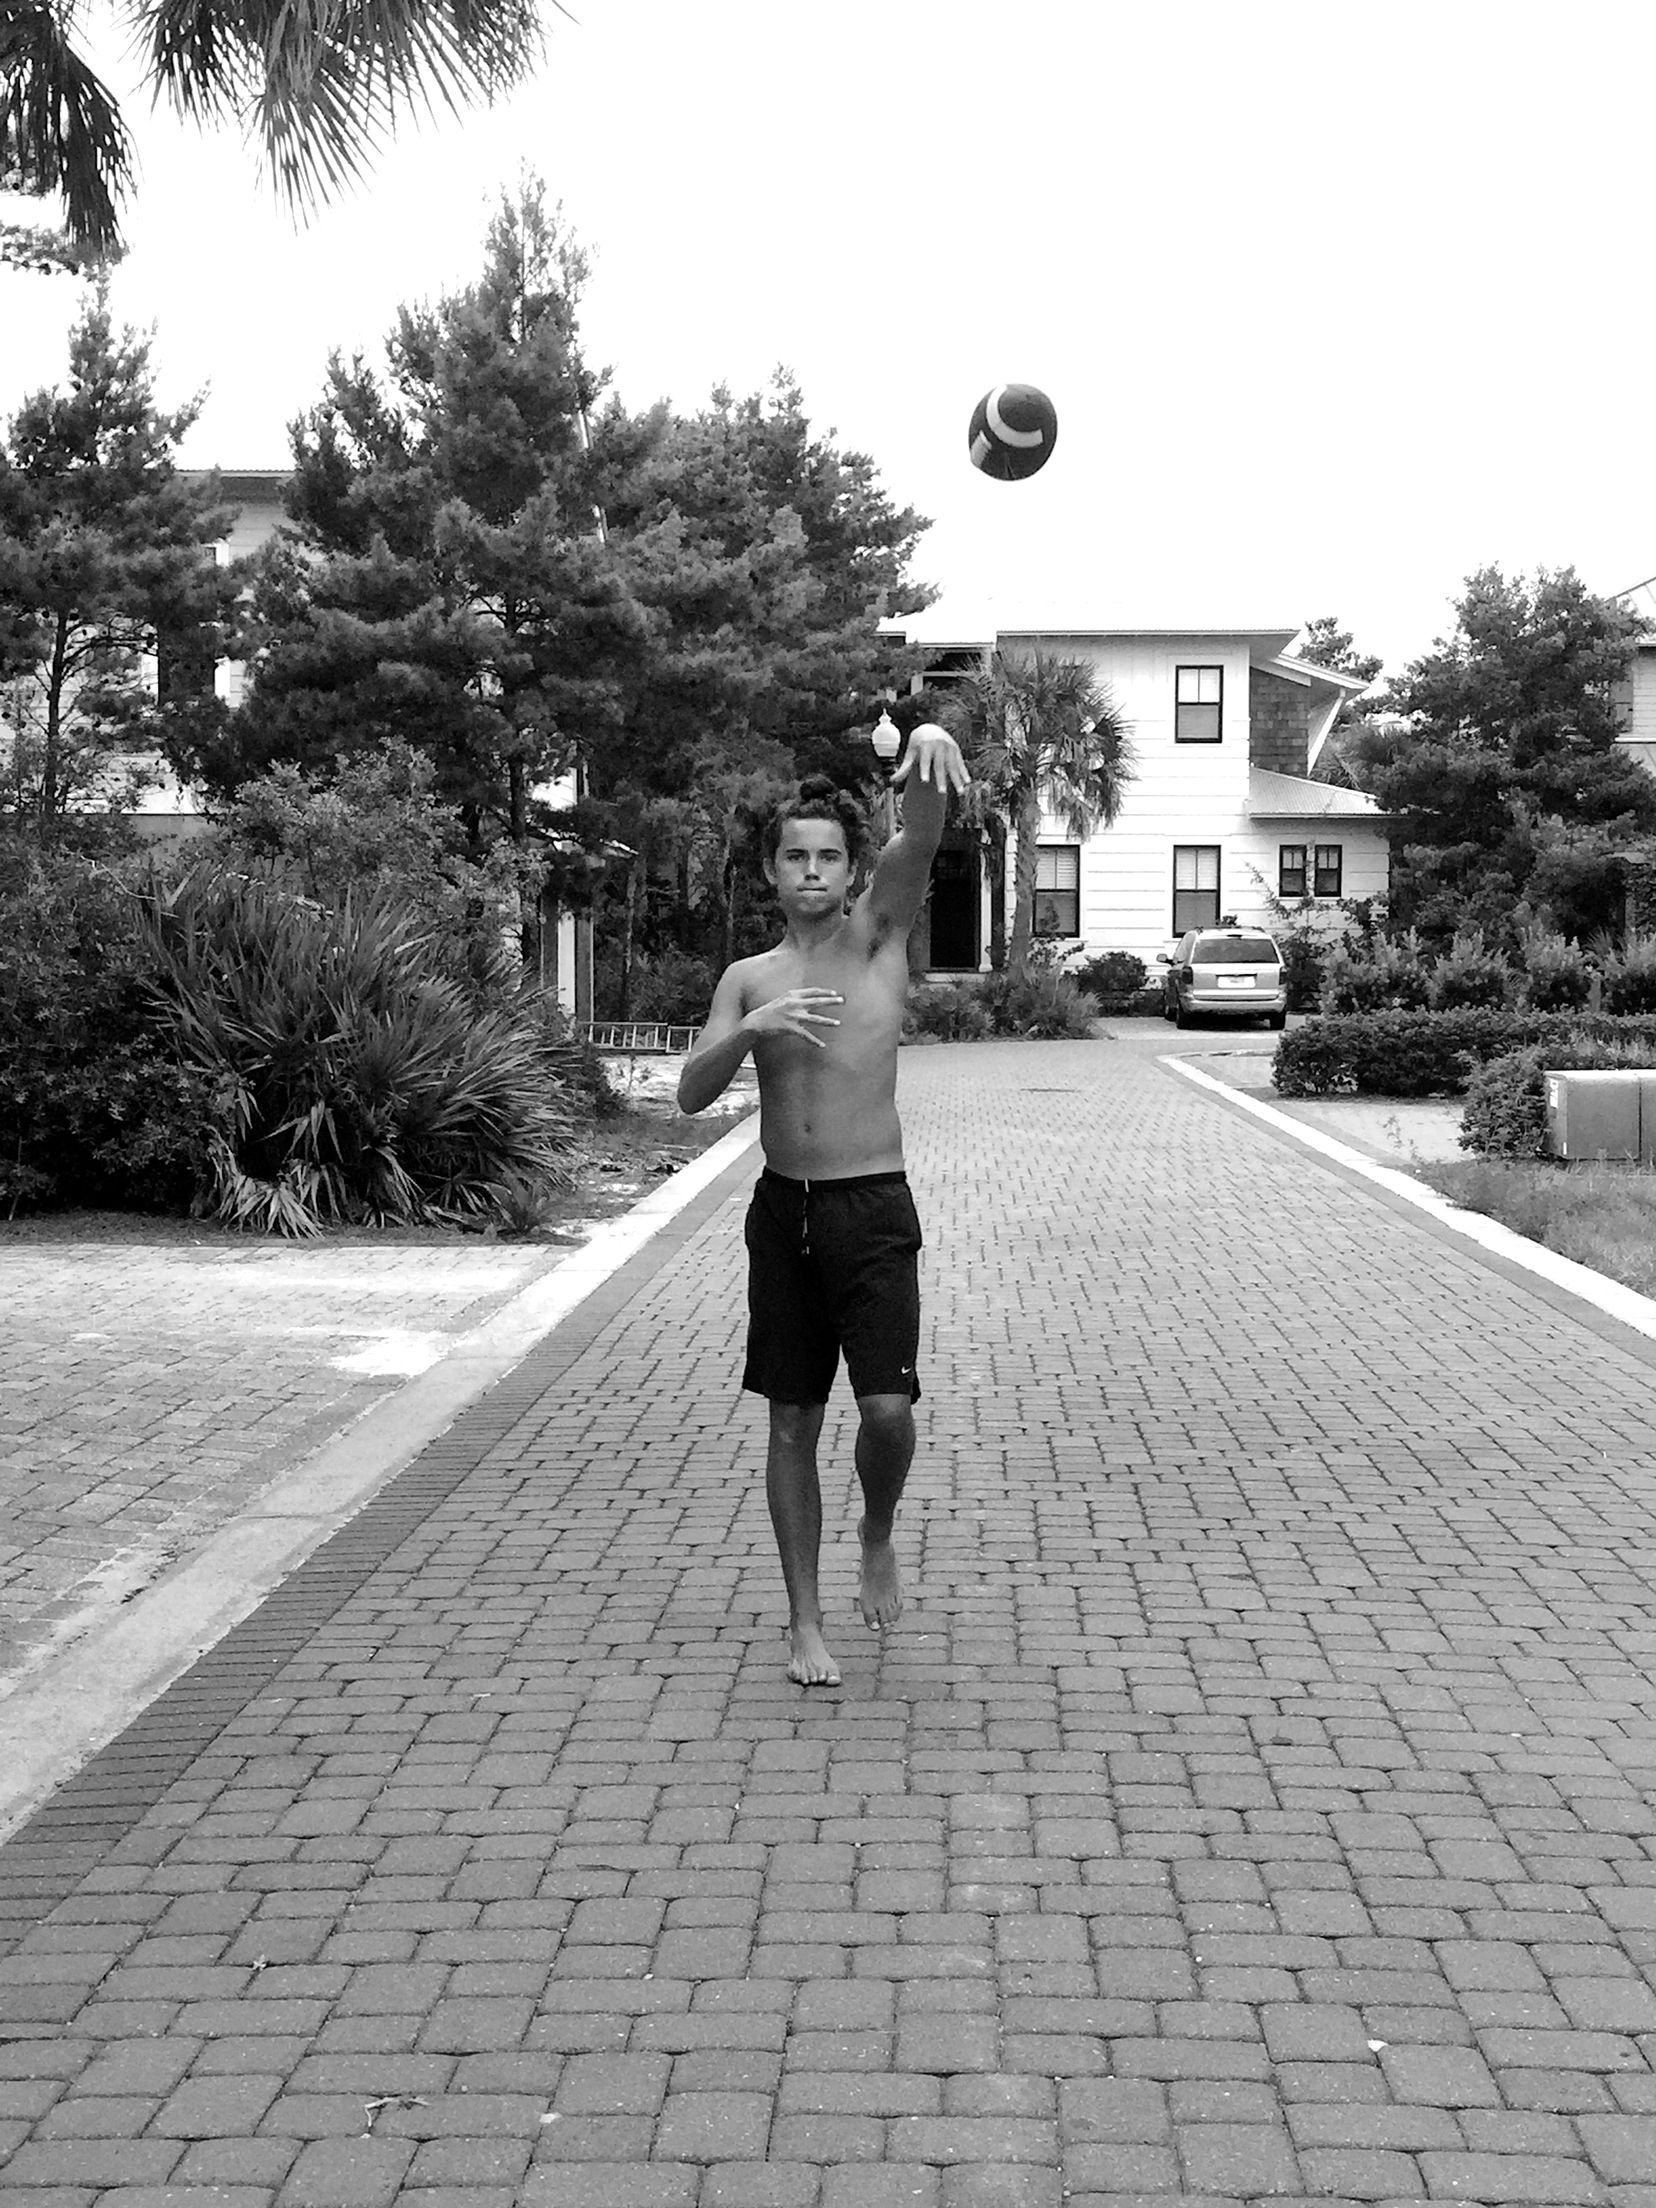 Black and white photography candid photography iphone photography athletic nike football beach house destin fl